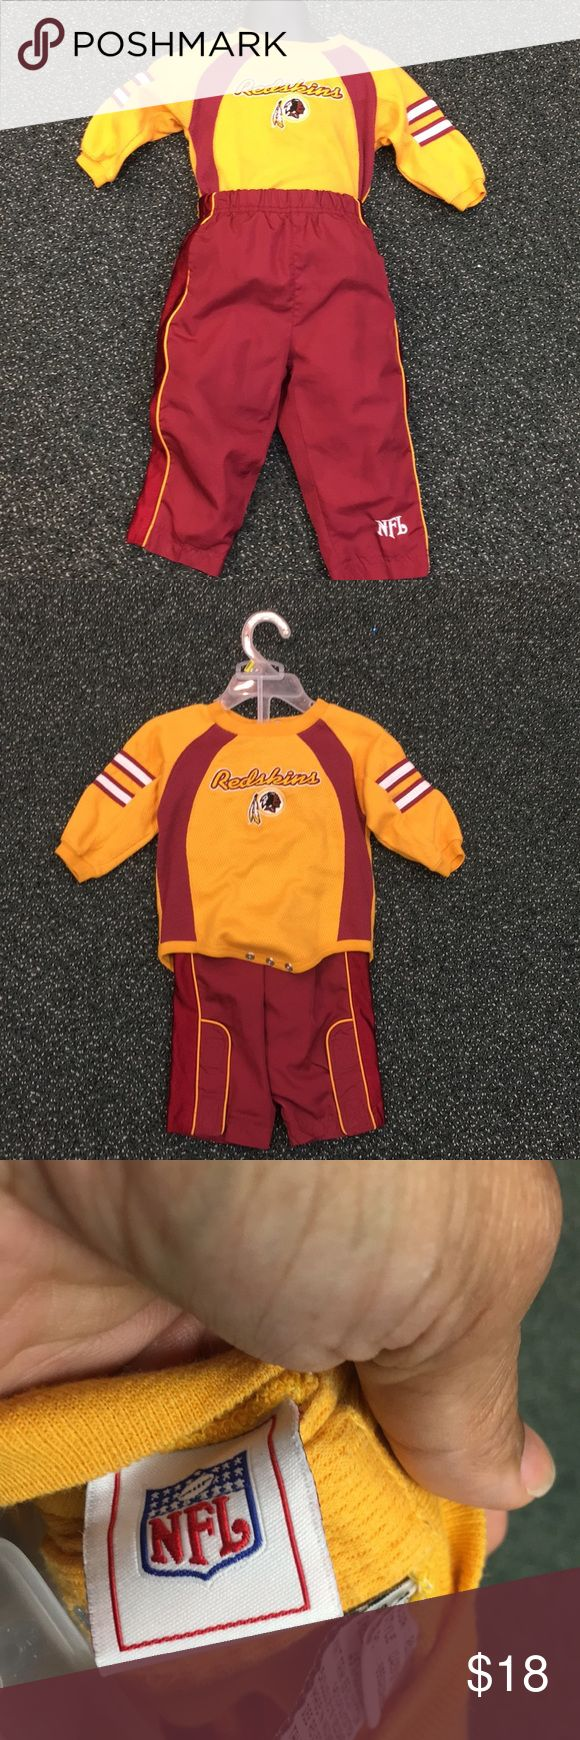 Size 18m Redskin kids outfit Preowned NFL Matching Sets